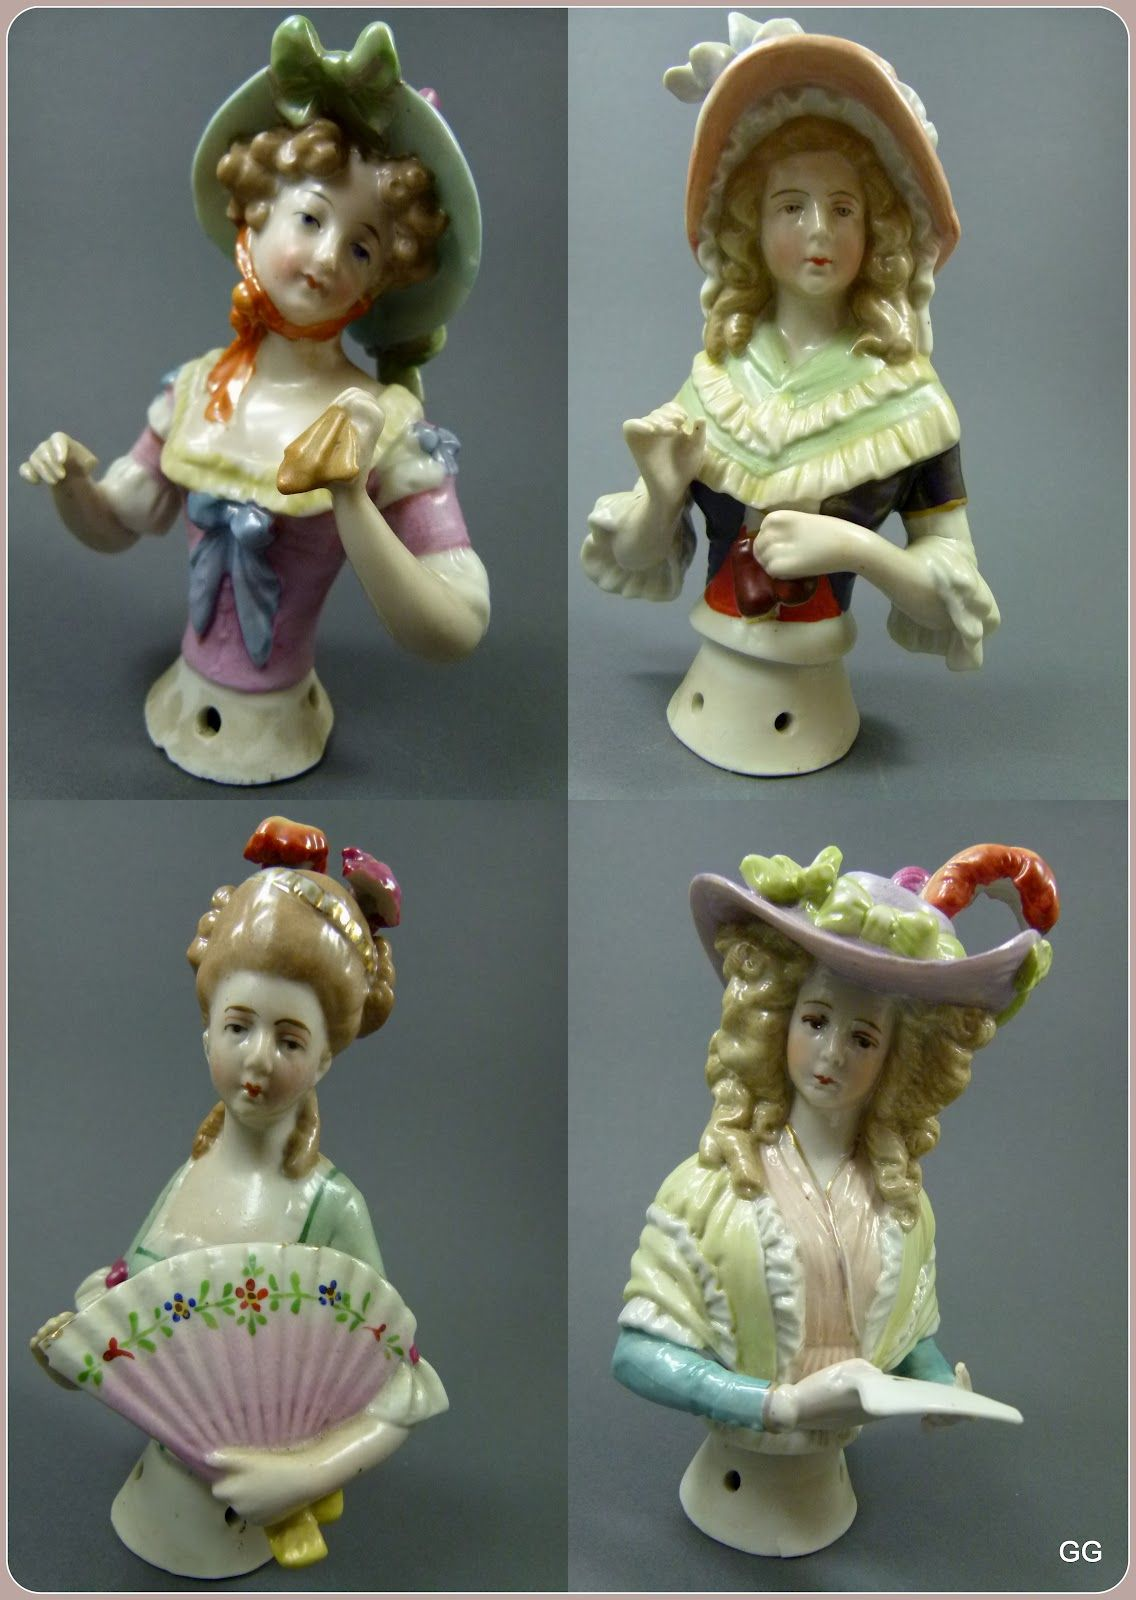 Sitzendorf produced a large number of beautiful half dolls and half doll related…